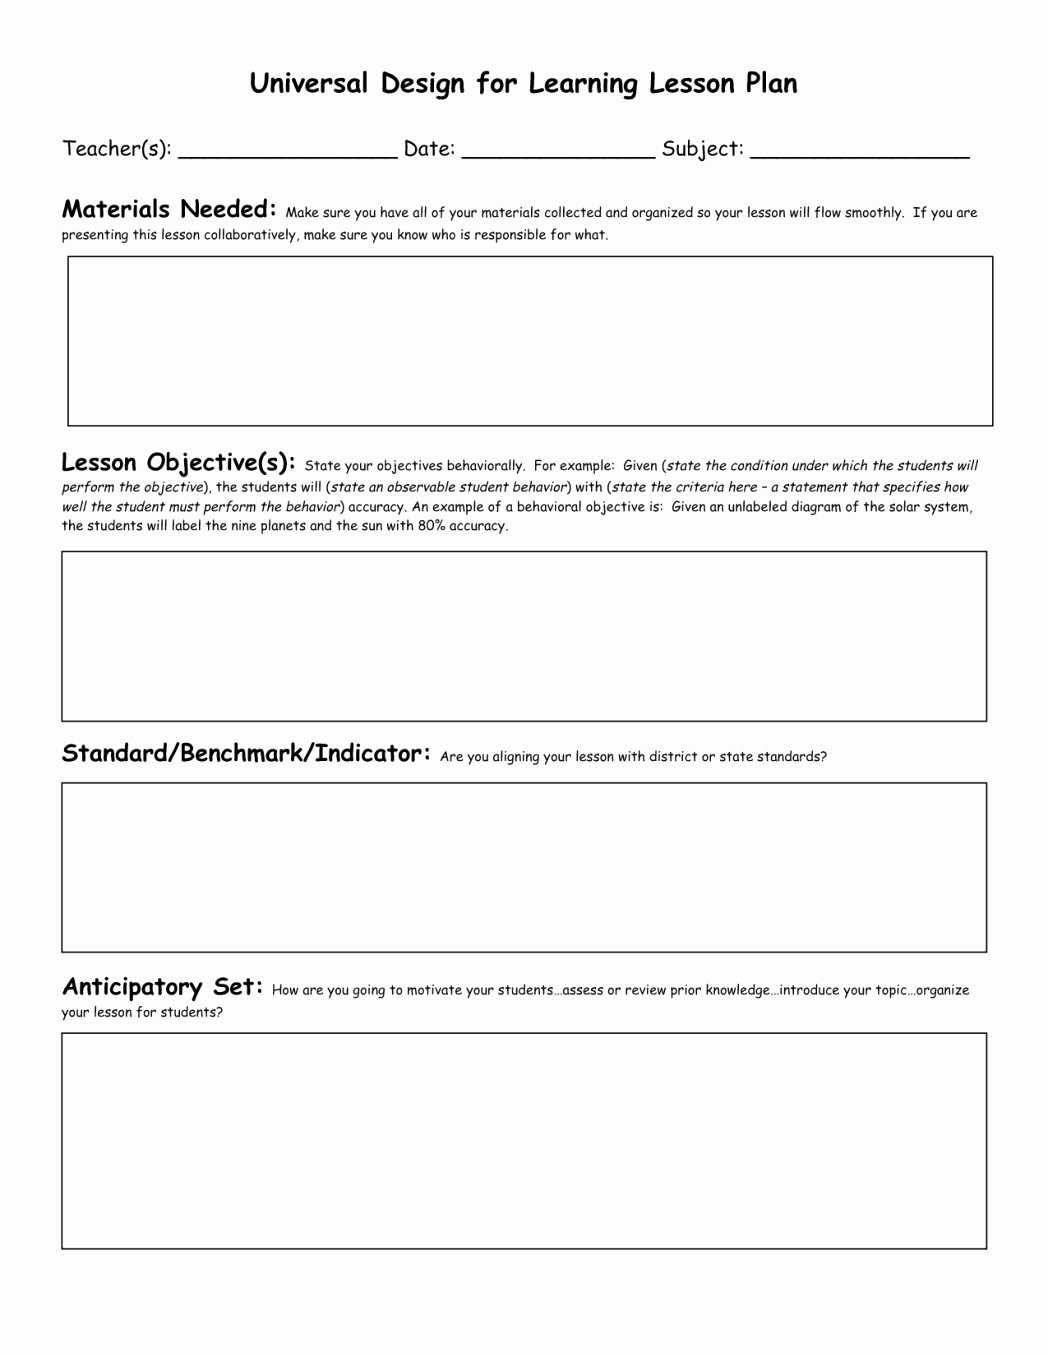 Blank Ubd Lesson Plan Template Best Of Perfect Ubd Lesson Plan Template Twilightblog